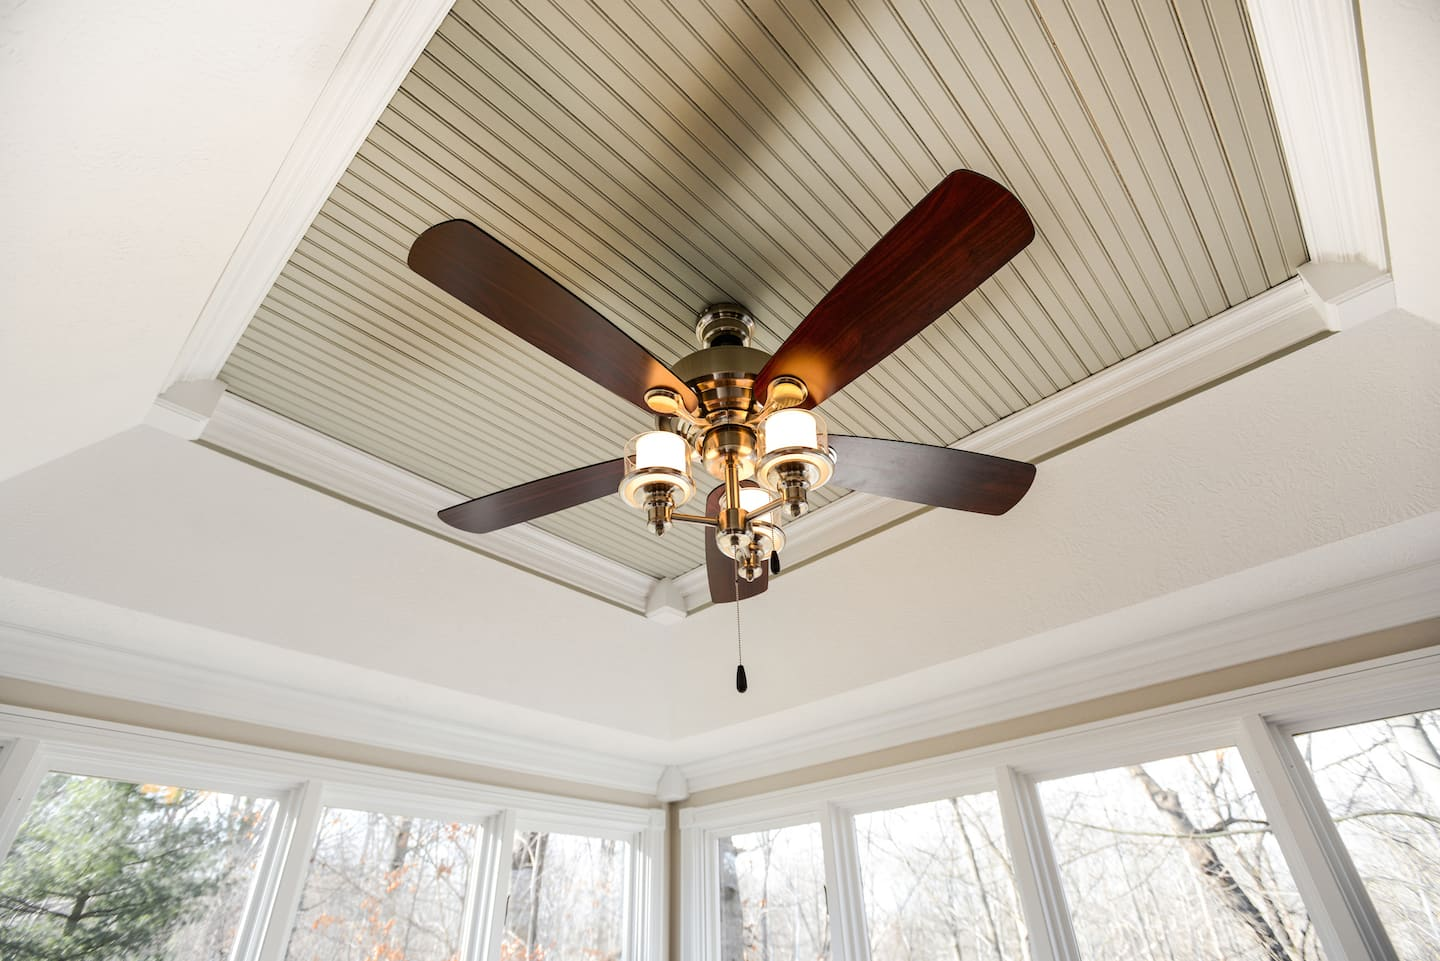 Ceiling Fan Installation and Safety